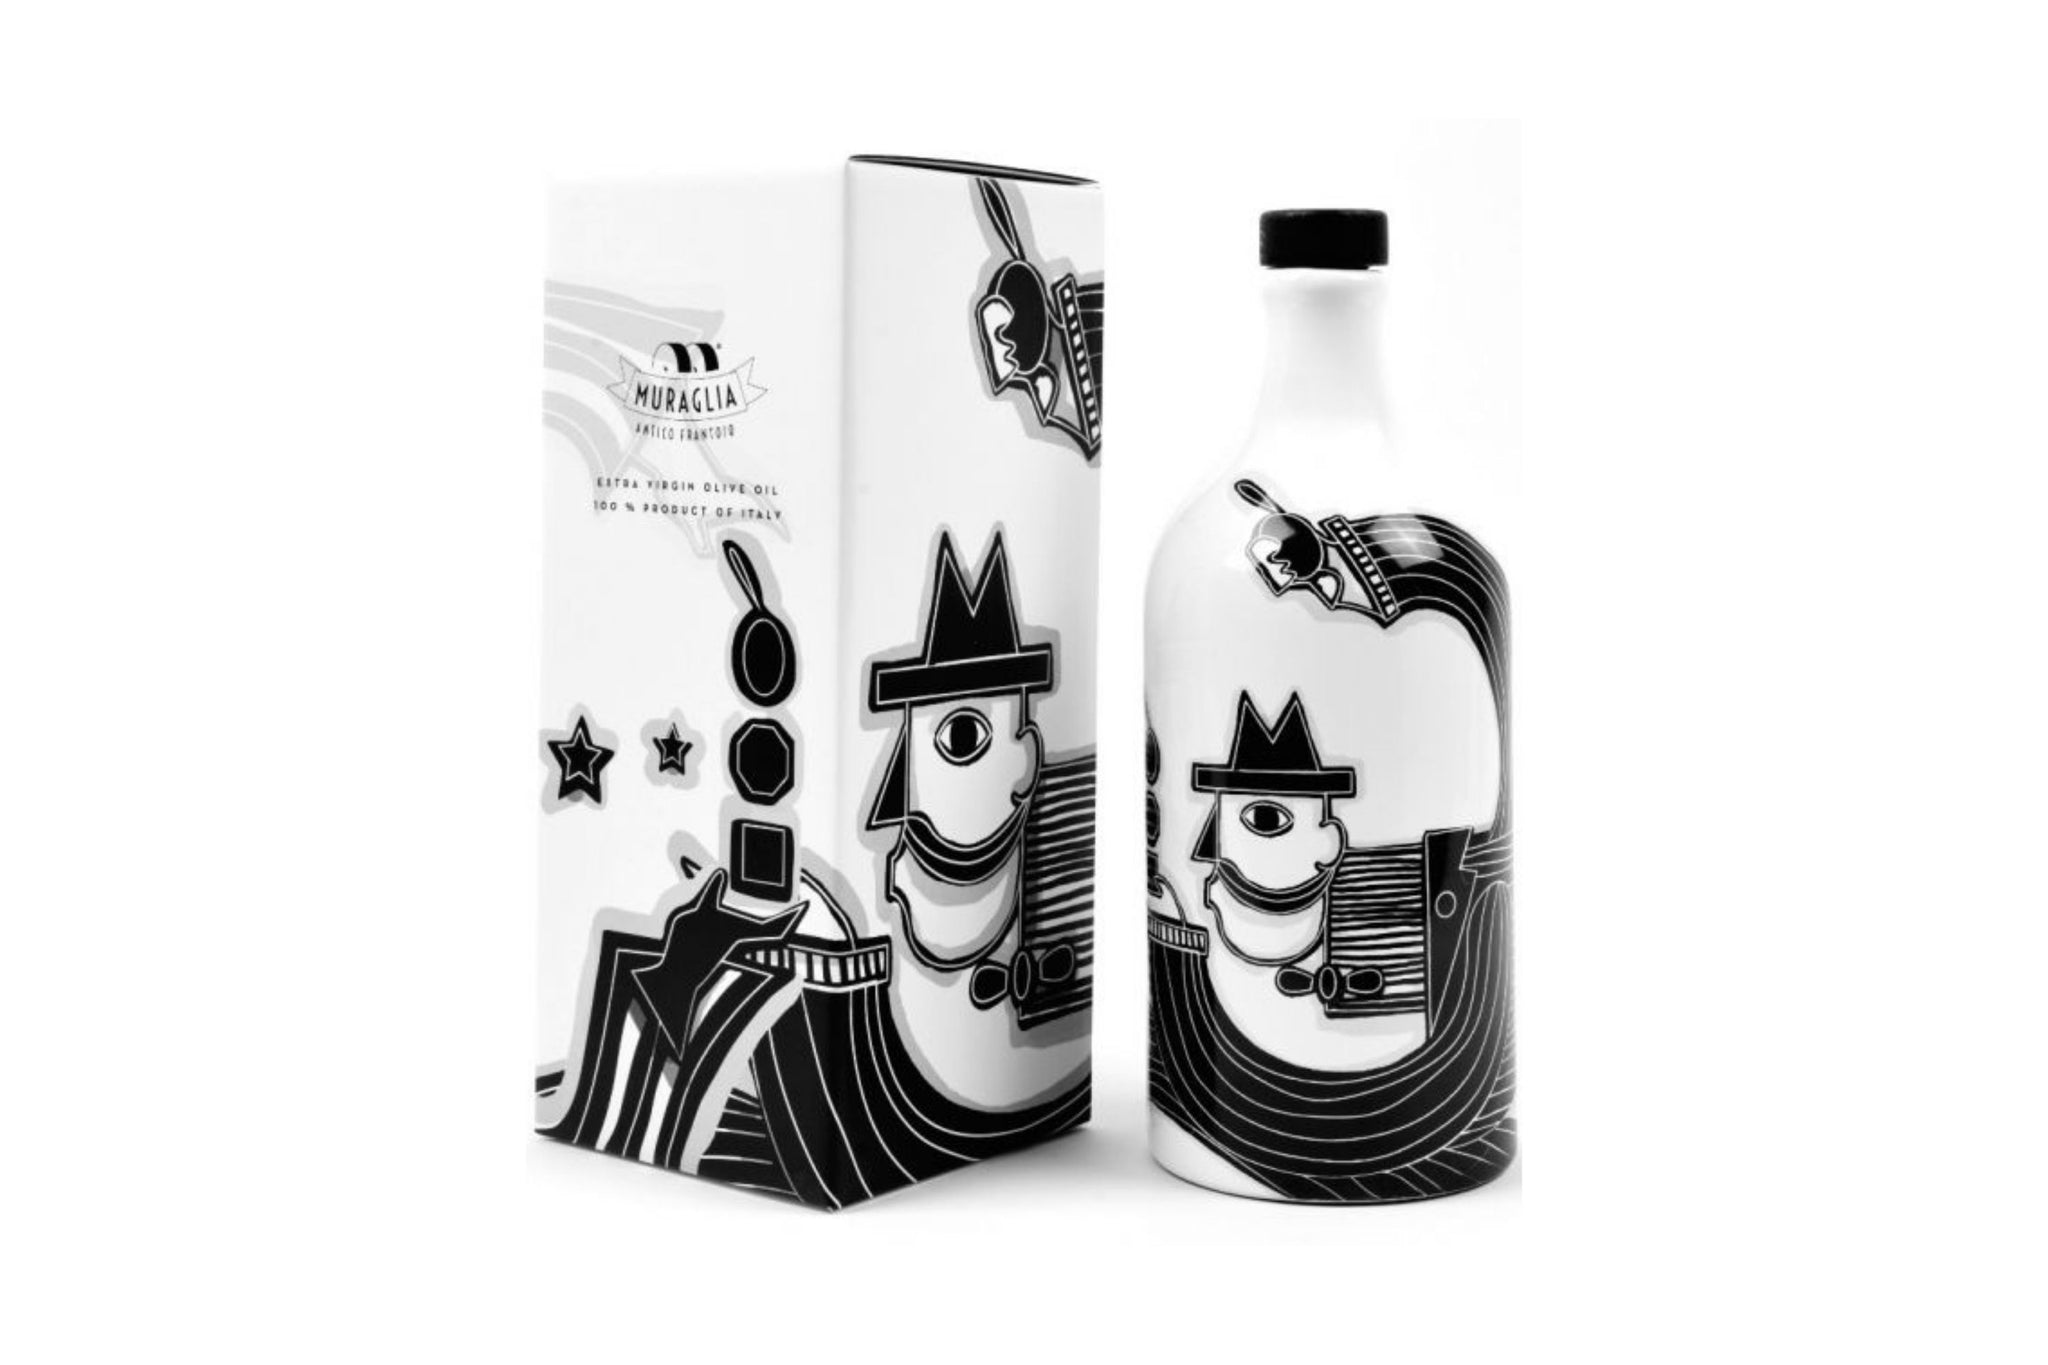 Frantoio Muraglia Artist Pierpaolo Gaballo Limited Edition The Man with the Hat Intense Fruity Extra Virgin Olive Oil 500ml